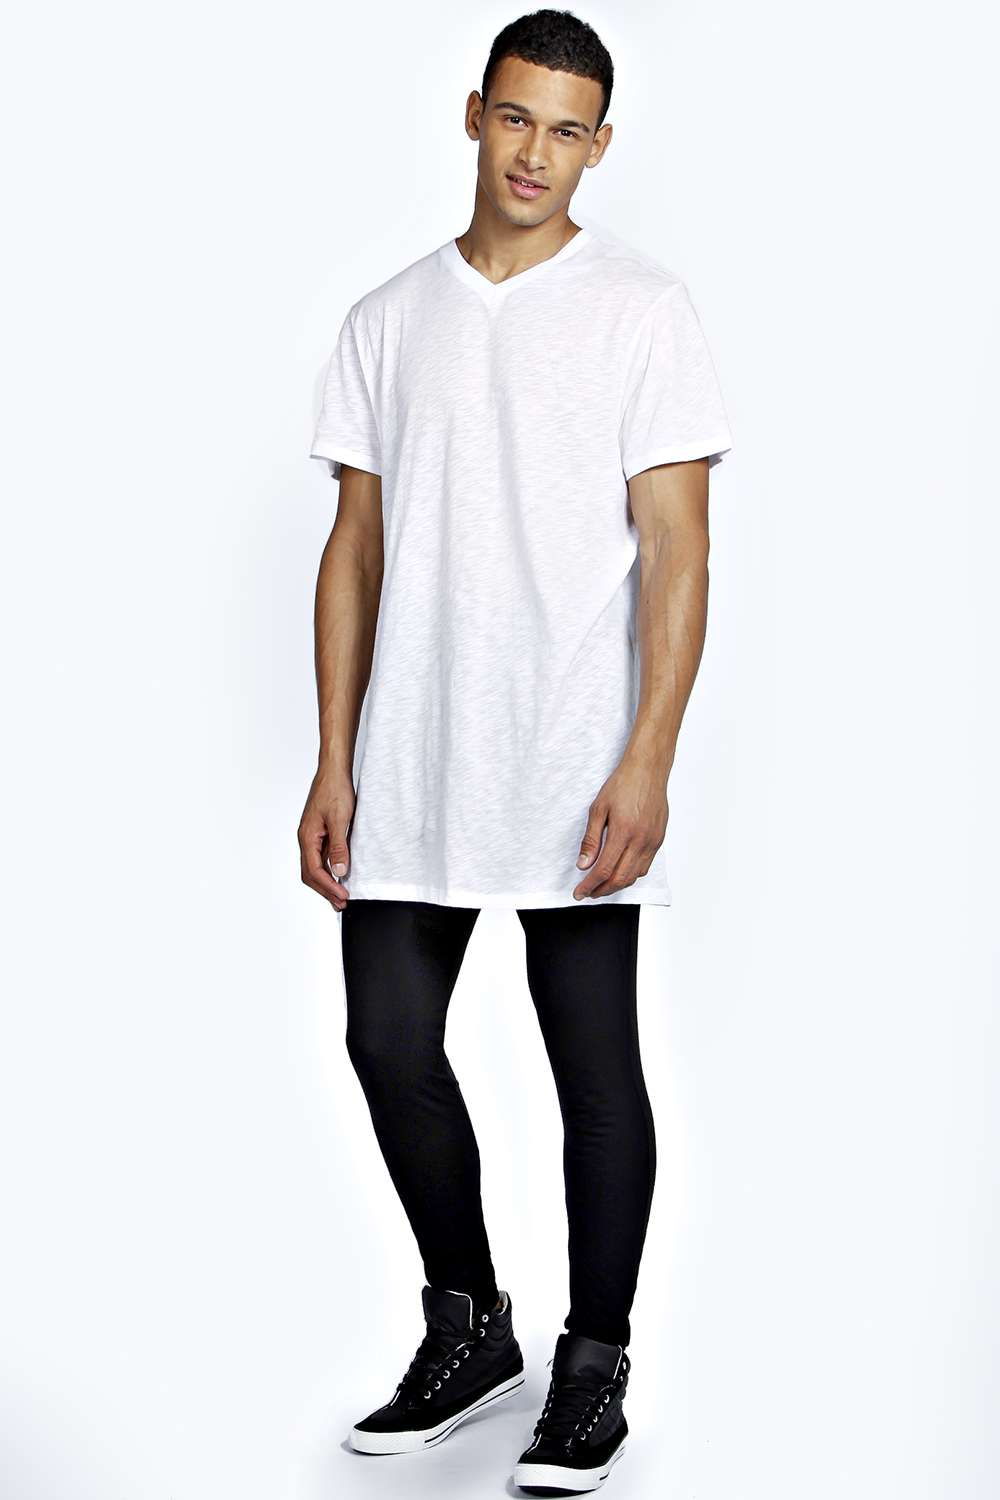 Men's Cotton Spandex Leggings offers a great support, cut to Athletic fit, and made to last.